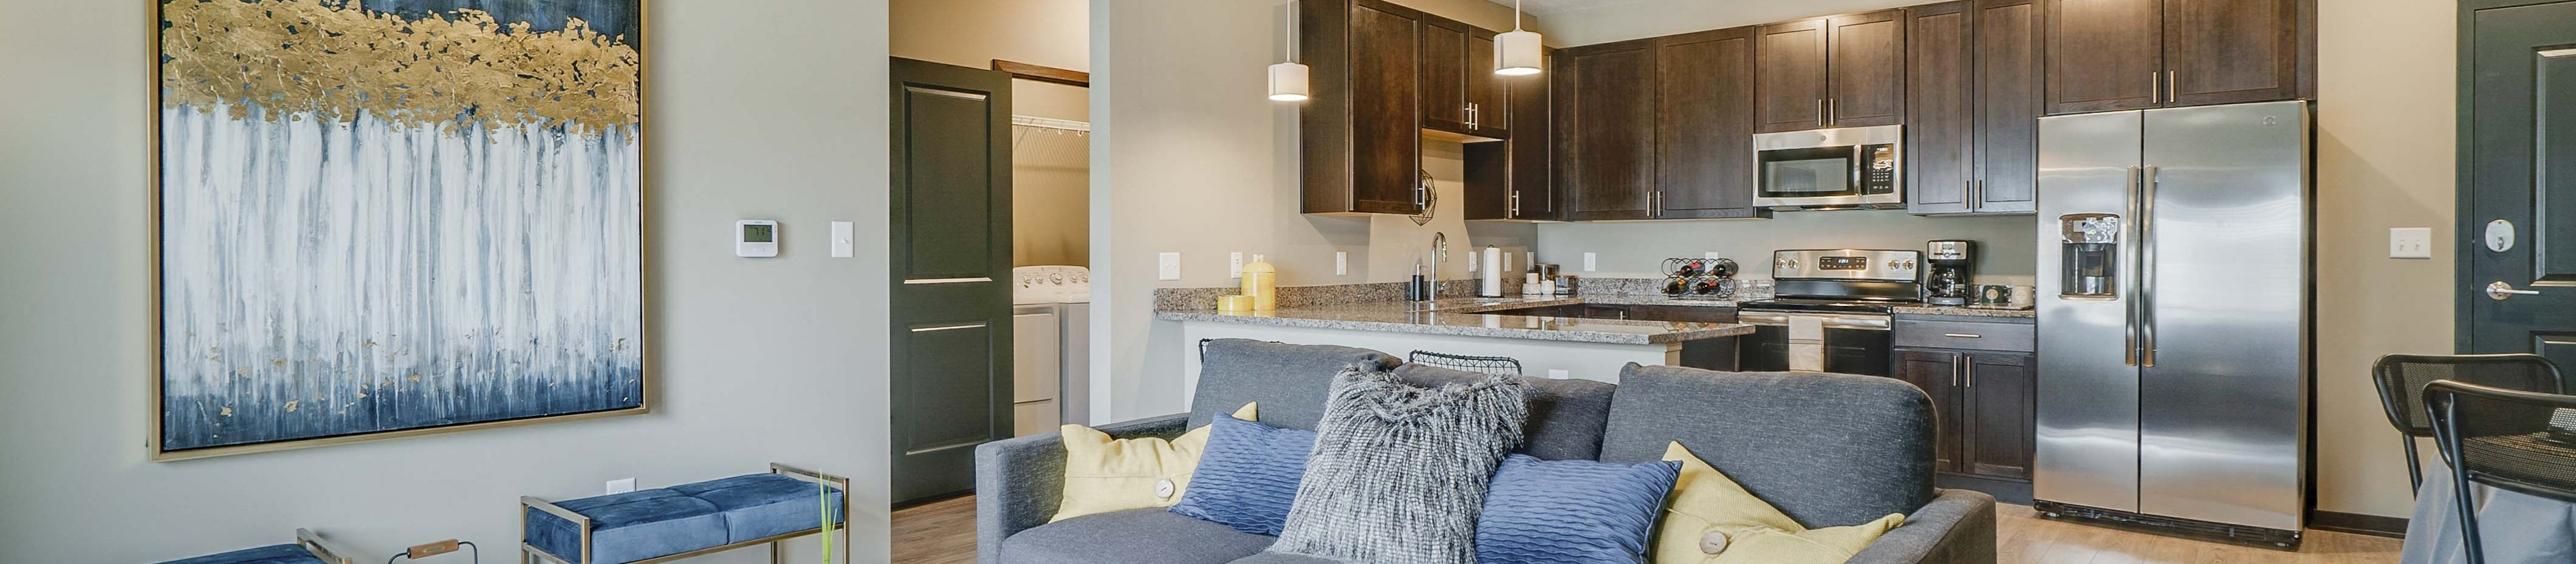 WH-Flats-South-Lincoln-Luxury-Apartments-for-Rent-2